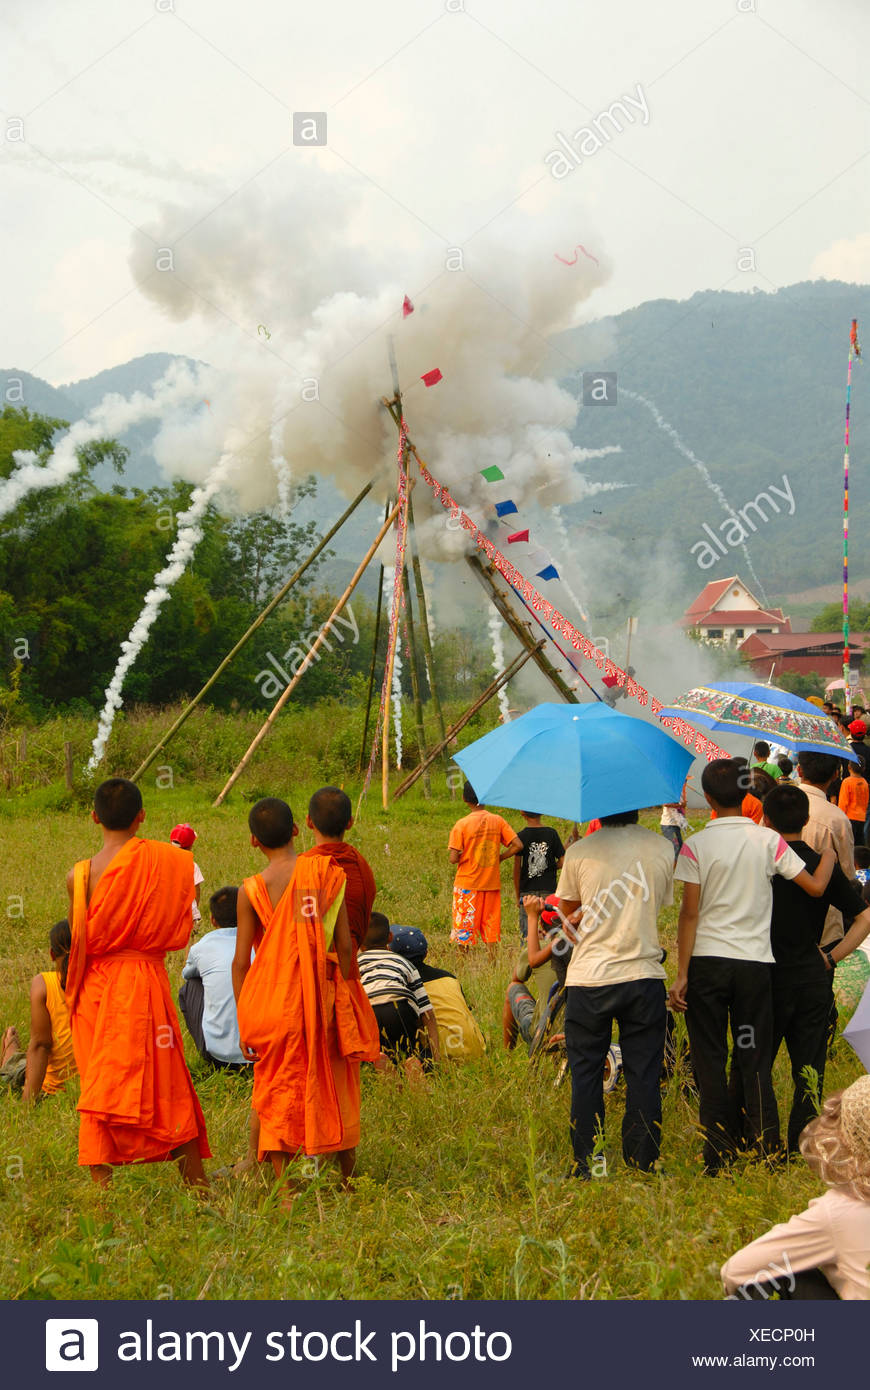 Festival, rocket firing, bang fai, launch and explosion of a rocket on the launch pad, monks in orange robes looking on - Stock Image